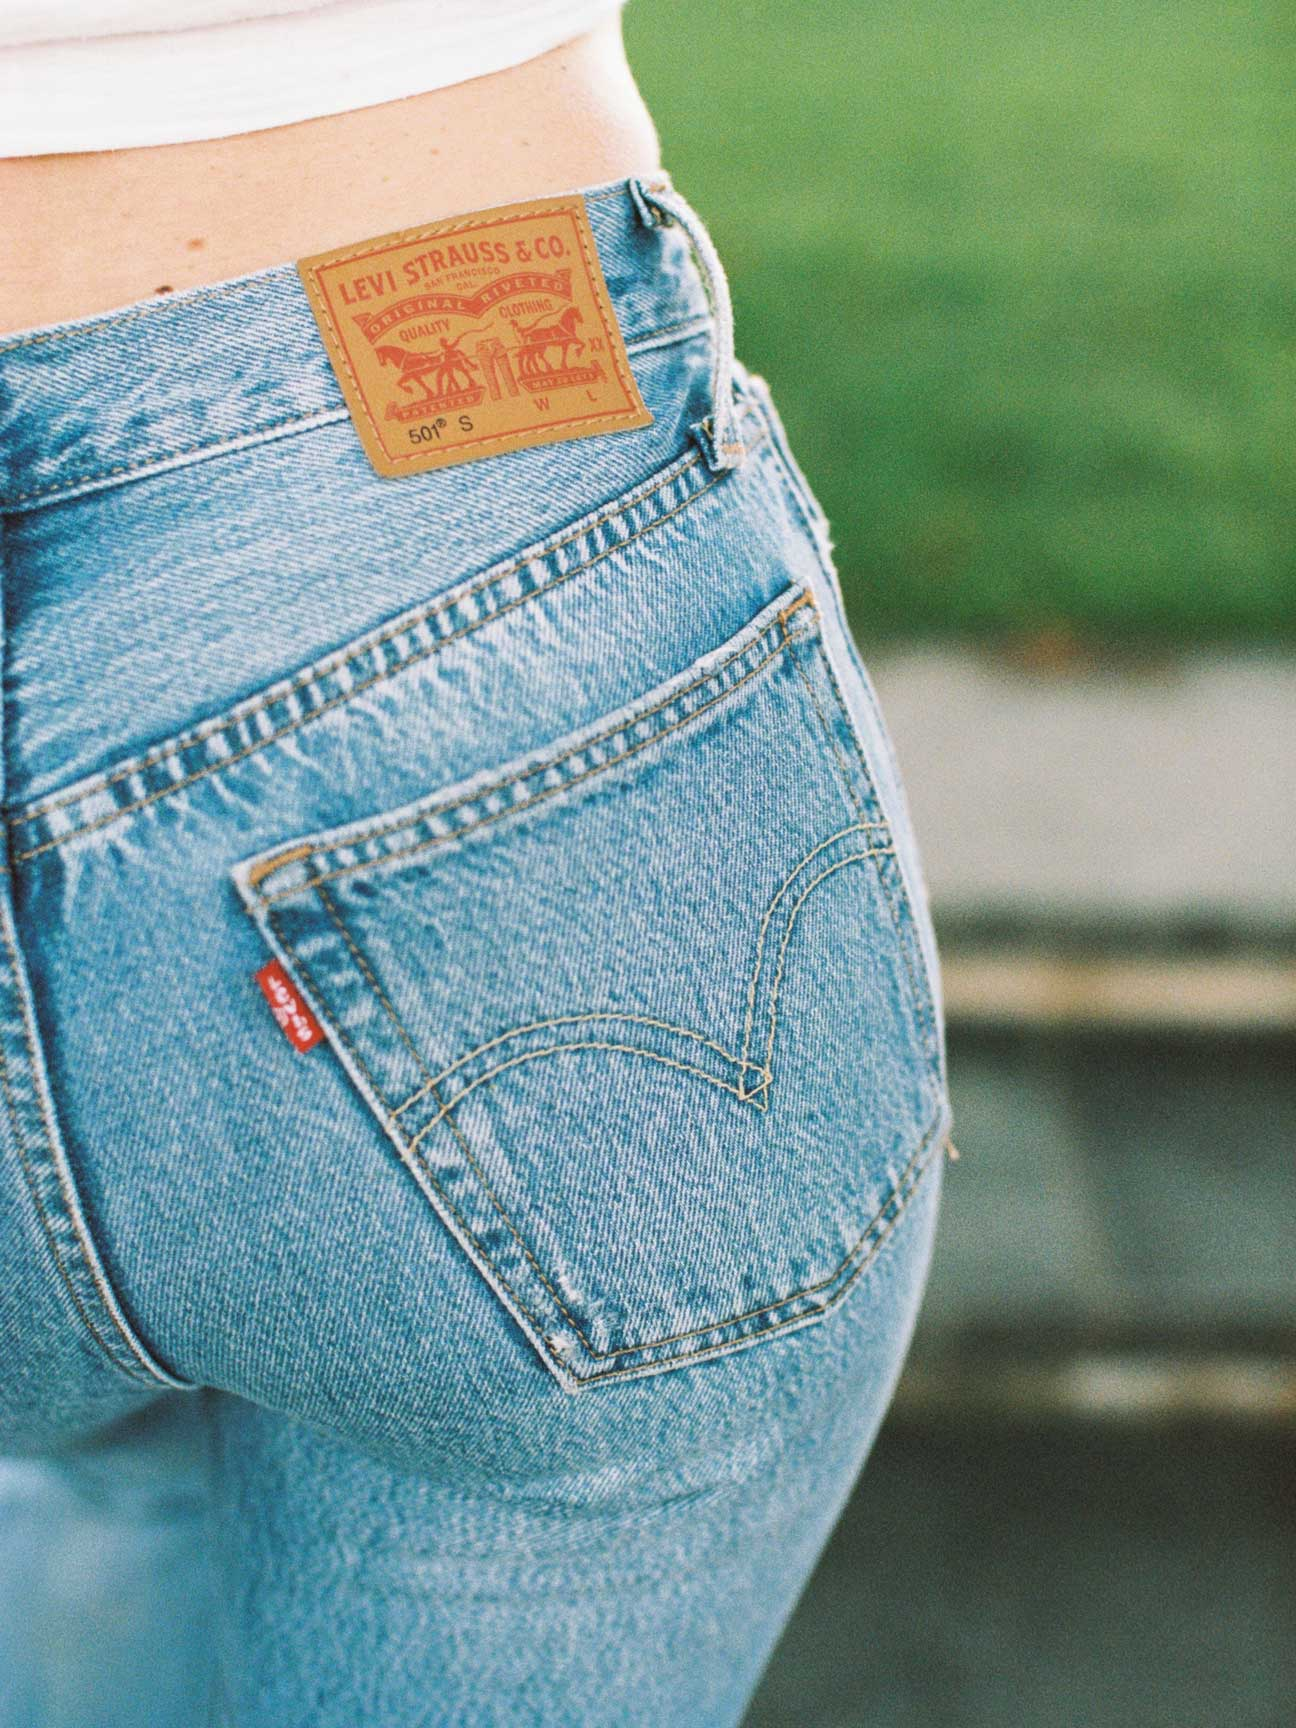 jeans levi's strauss urban style